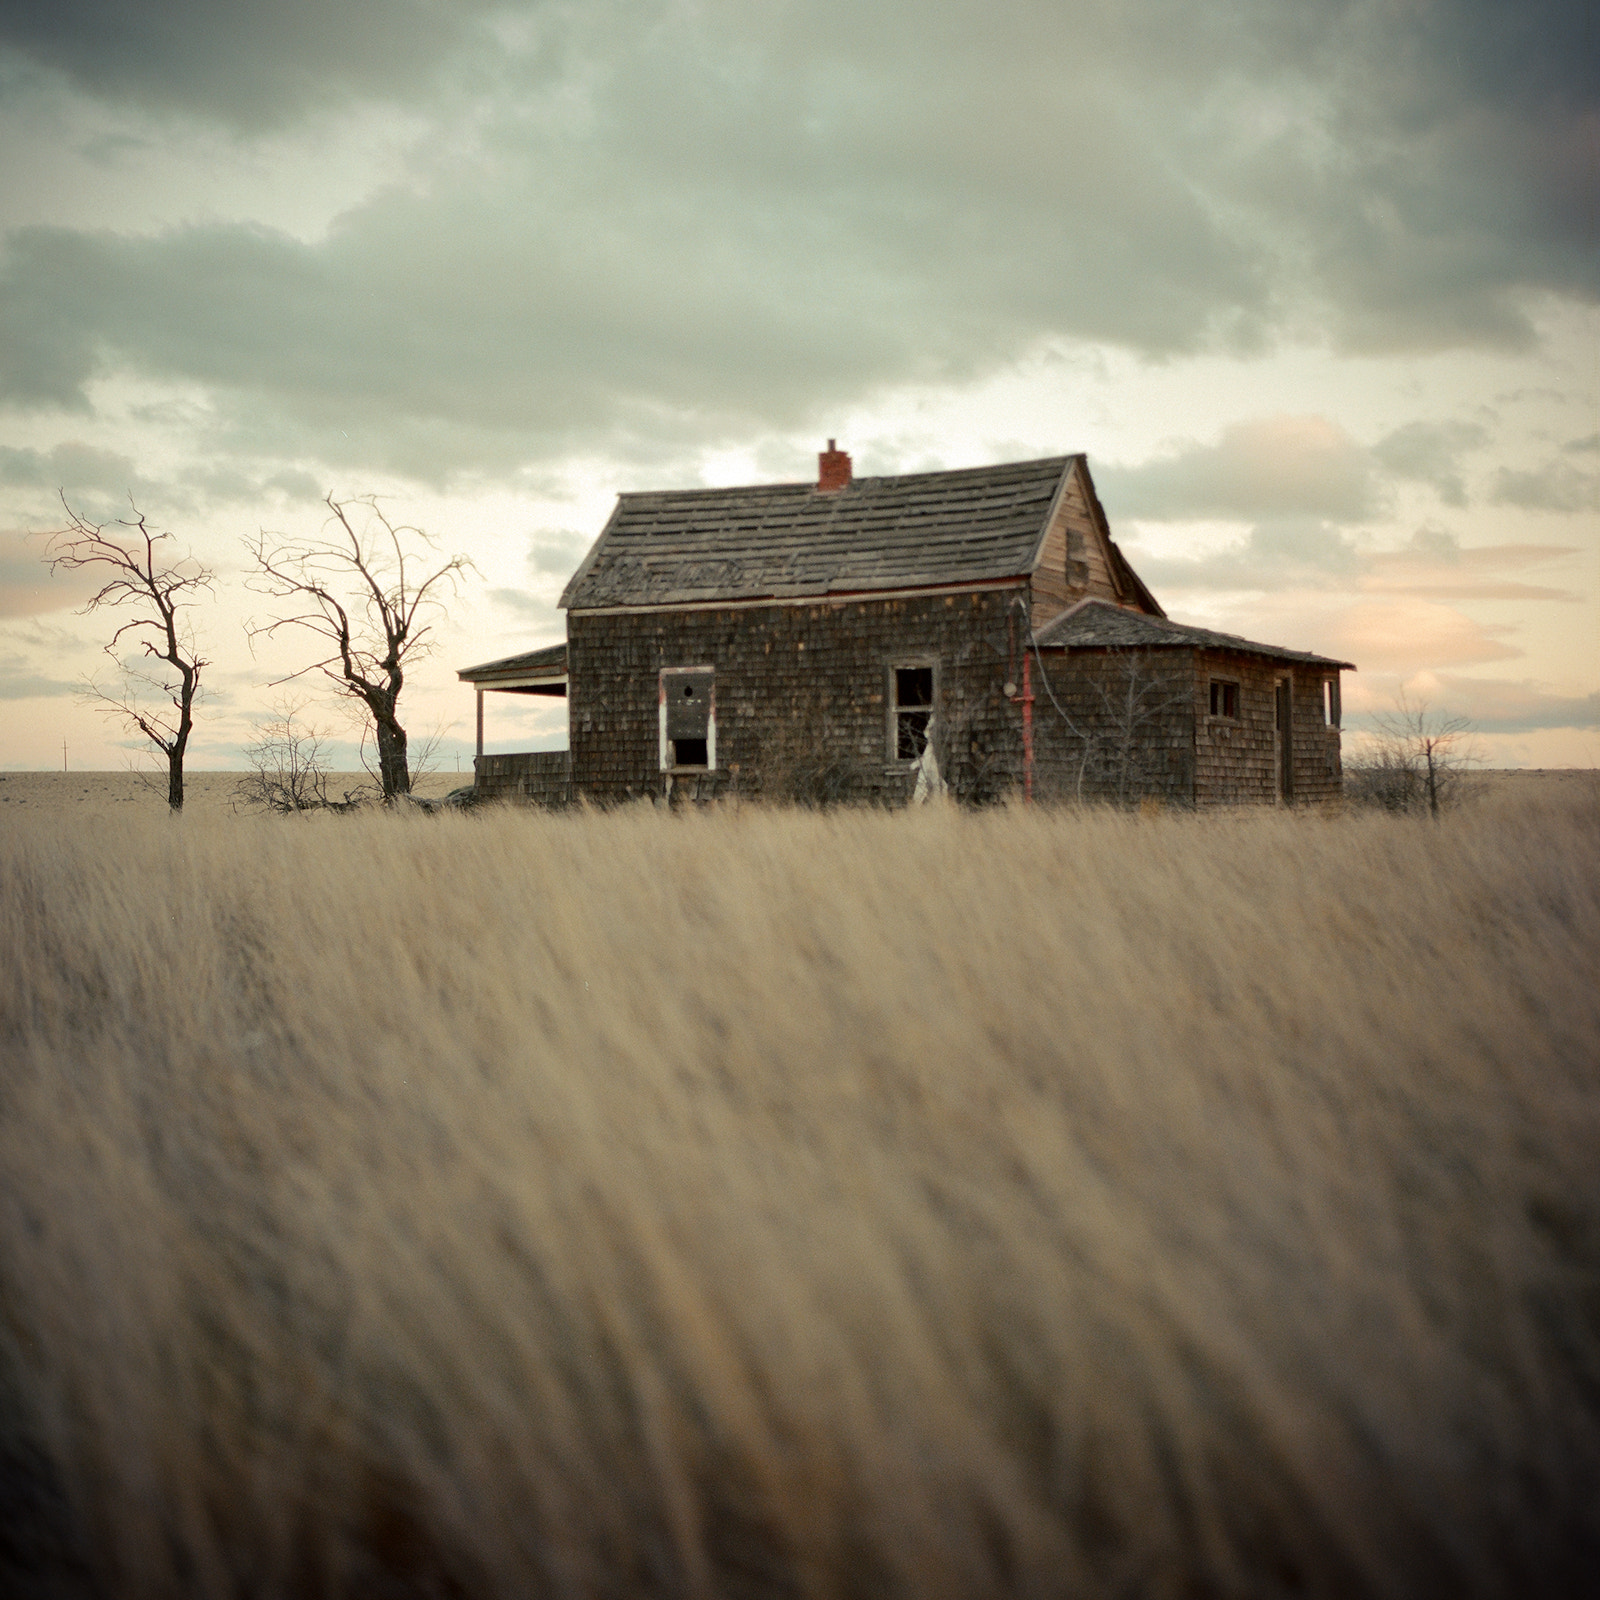 Photograph madras, oregon by Cole Rise on 500px